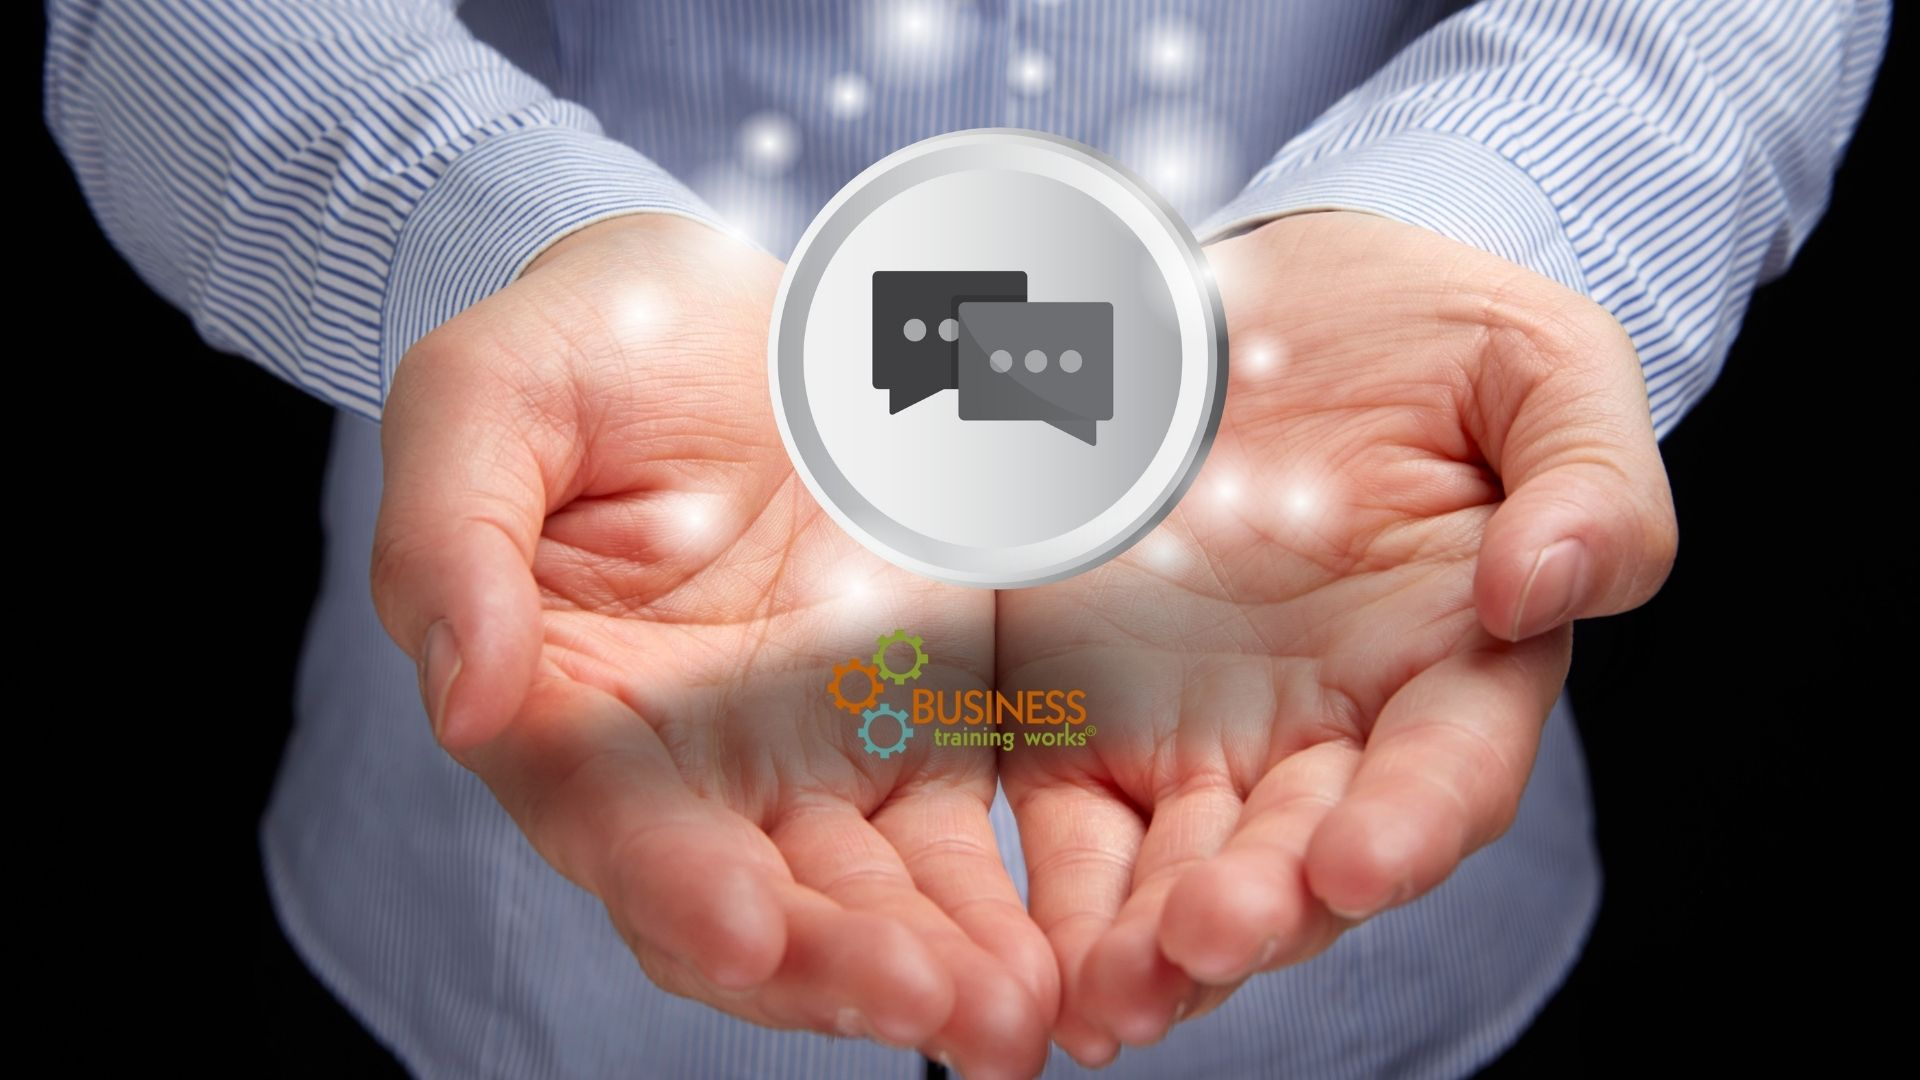 Web-Based Presenting to Executives Course